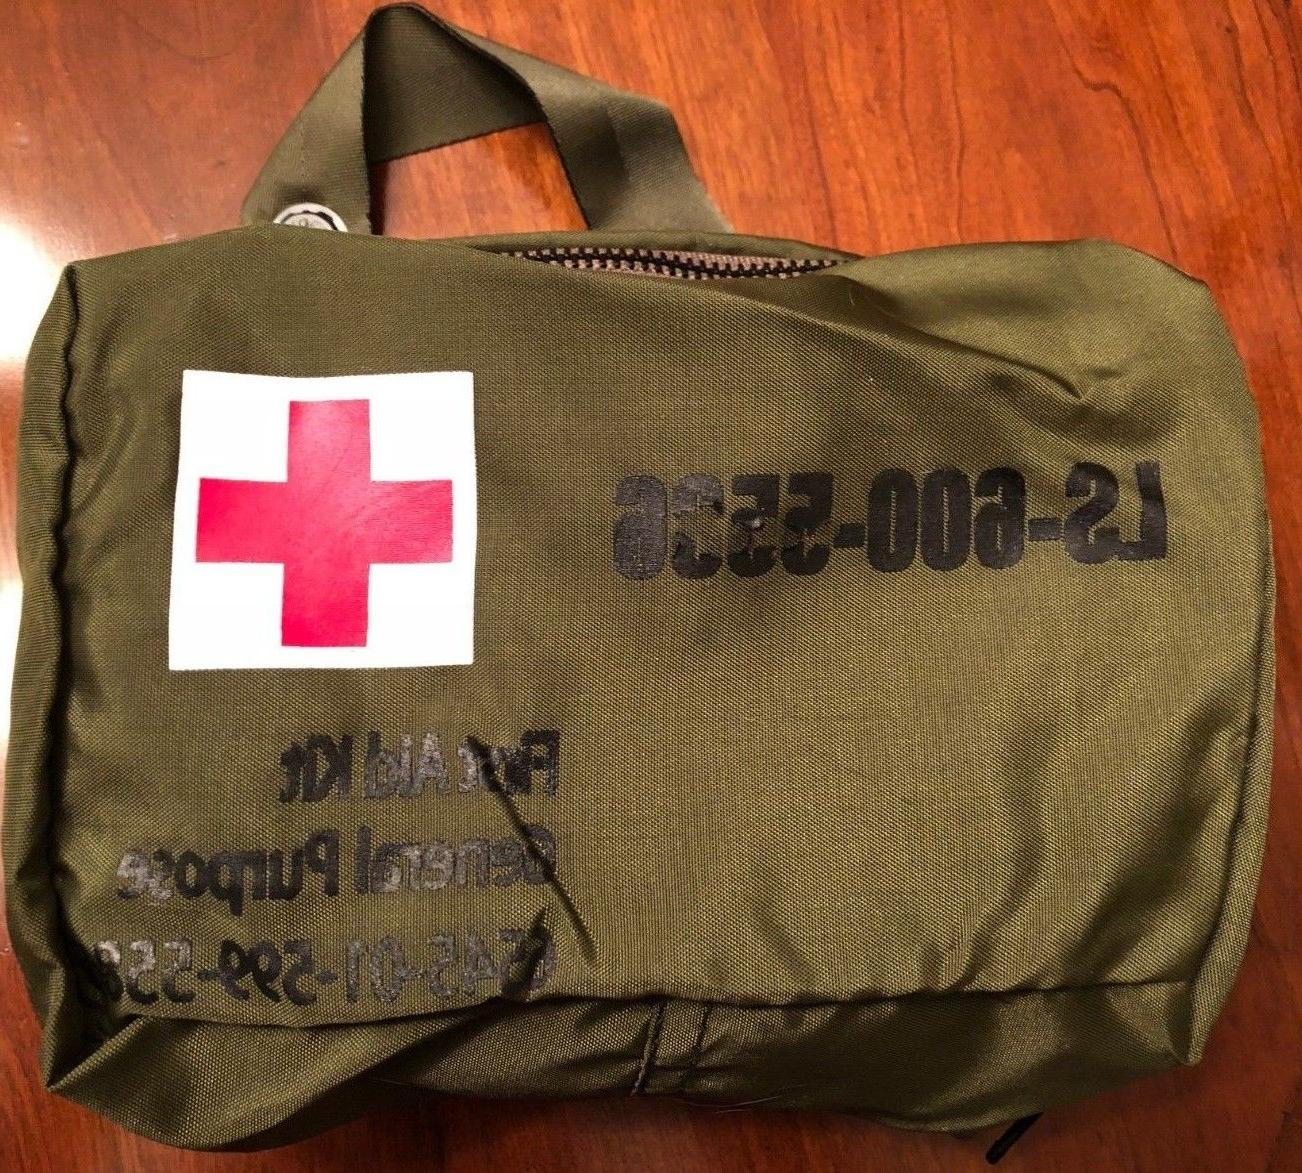 Travel/Hunting Emergency Bag Pouch for Survival Supplies